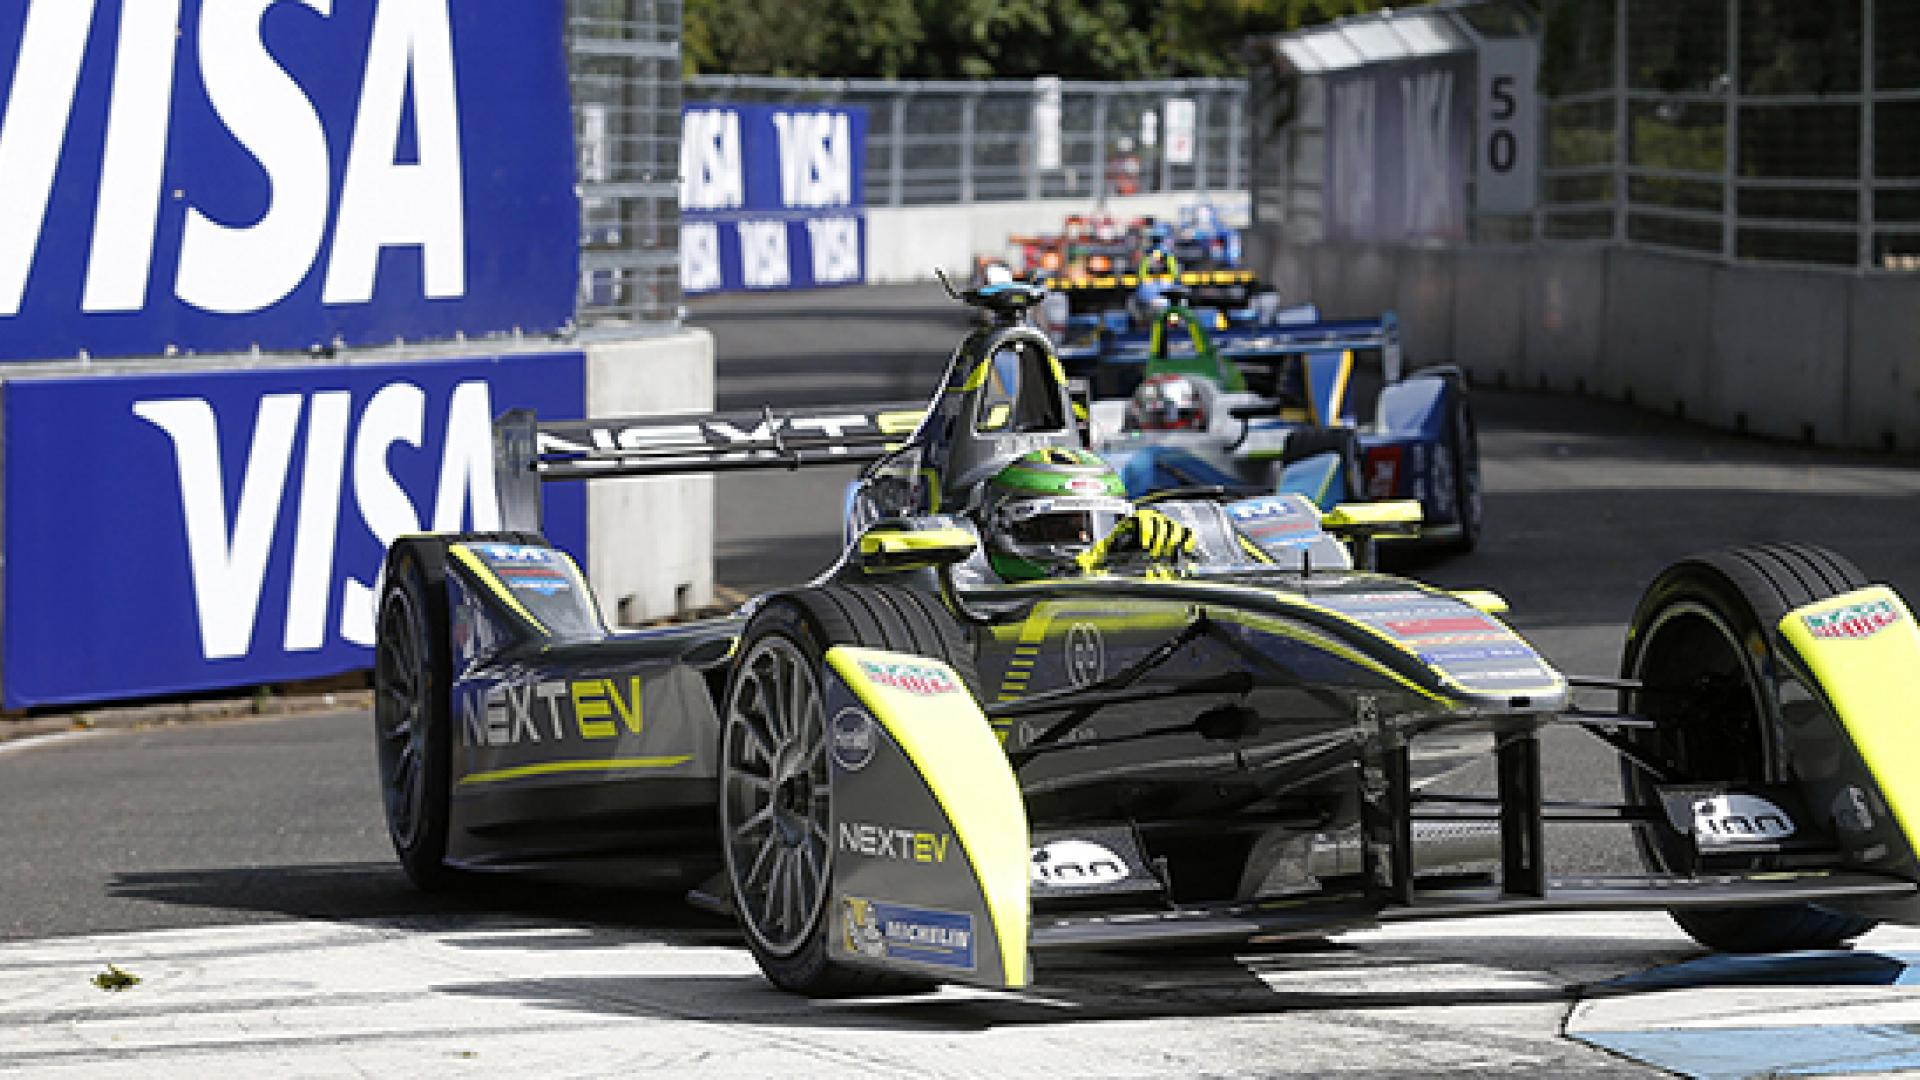 NEXTEV TCR wins the Drivers Title in the first Formula E Championship ever